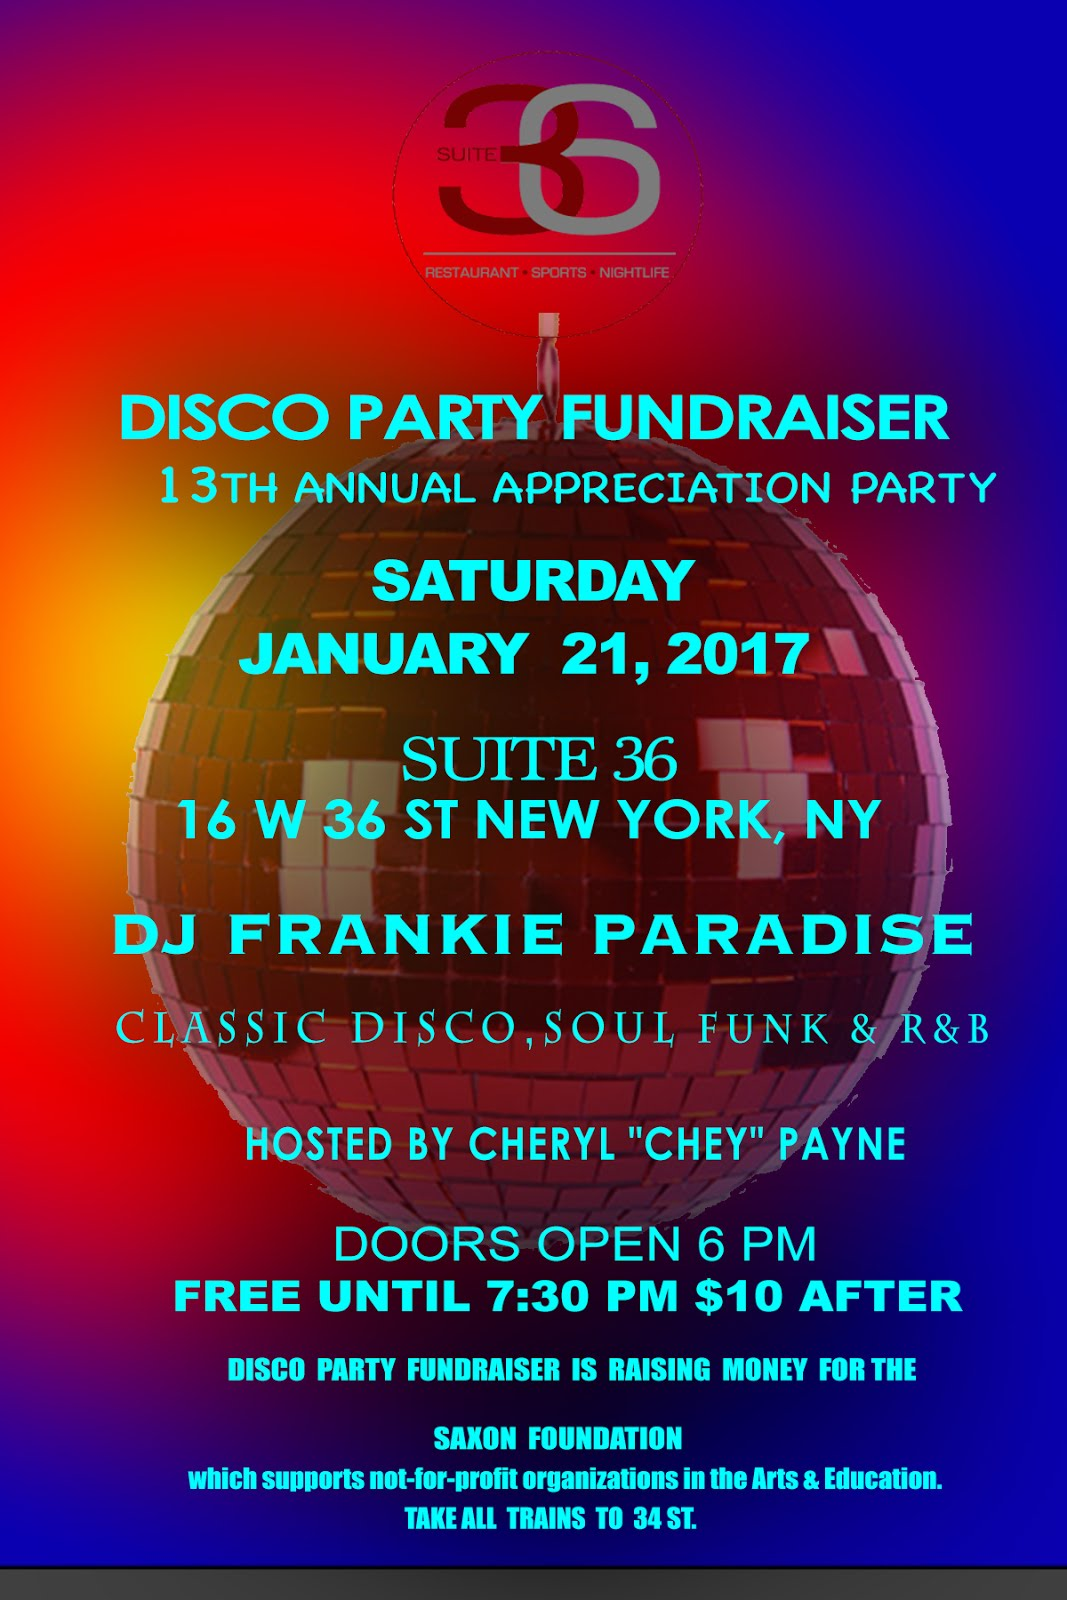 Disco Party Fundraiser's 13th Annual Appreciation Party